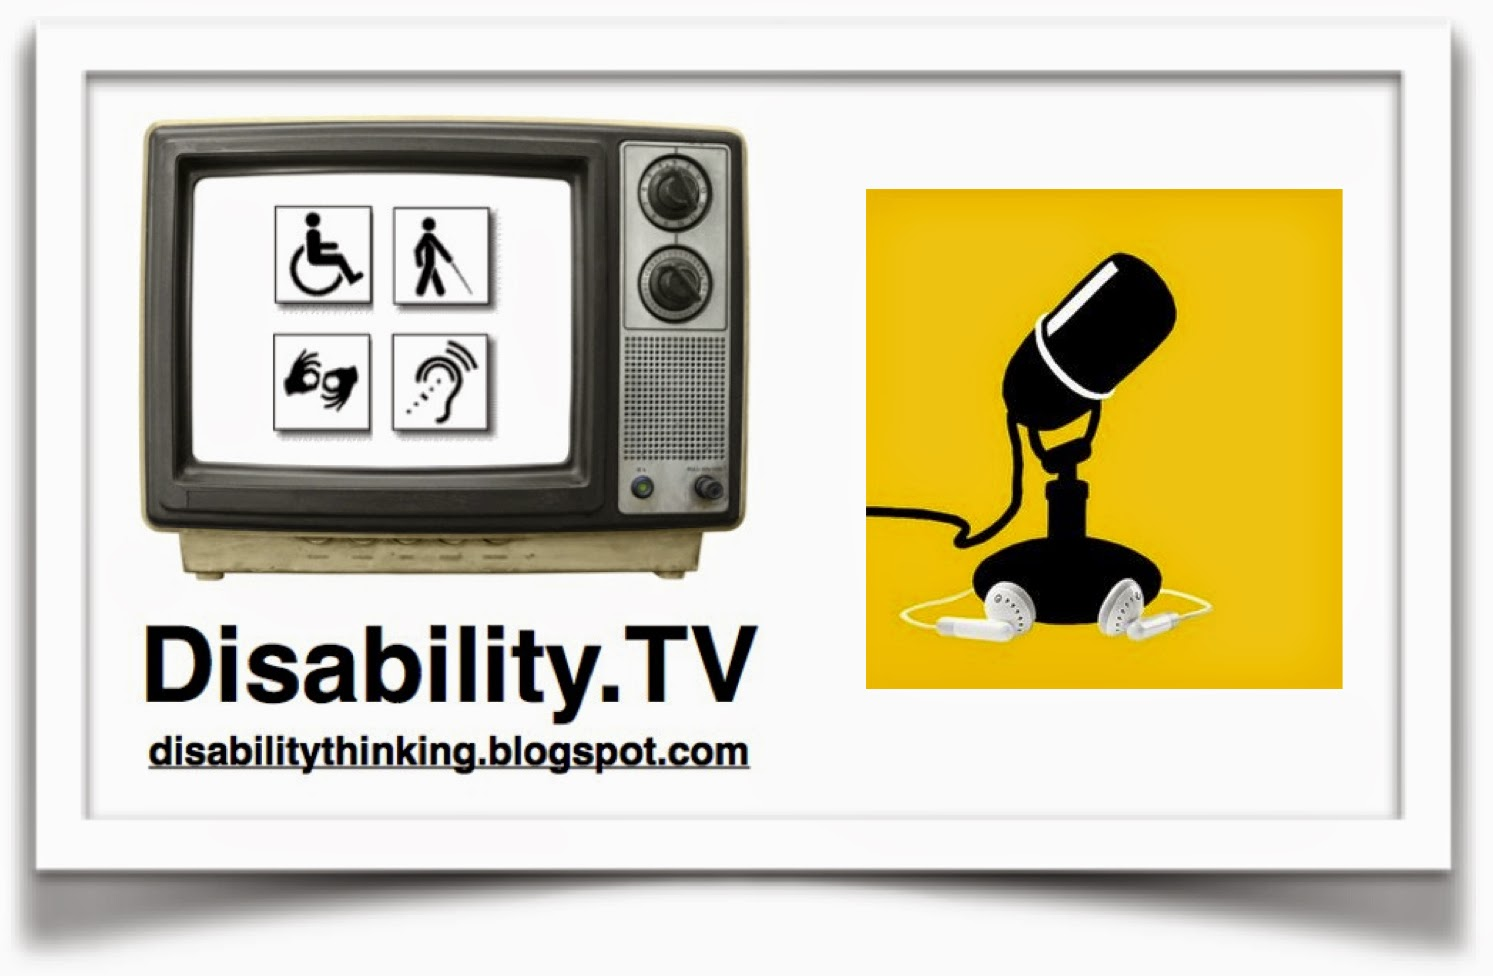 Disability.TV disability thinking.blogspot.com